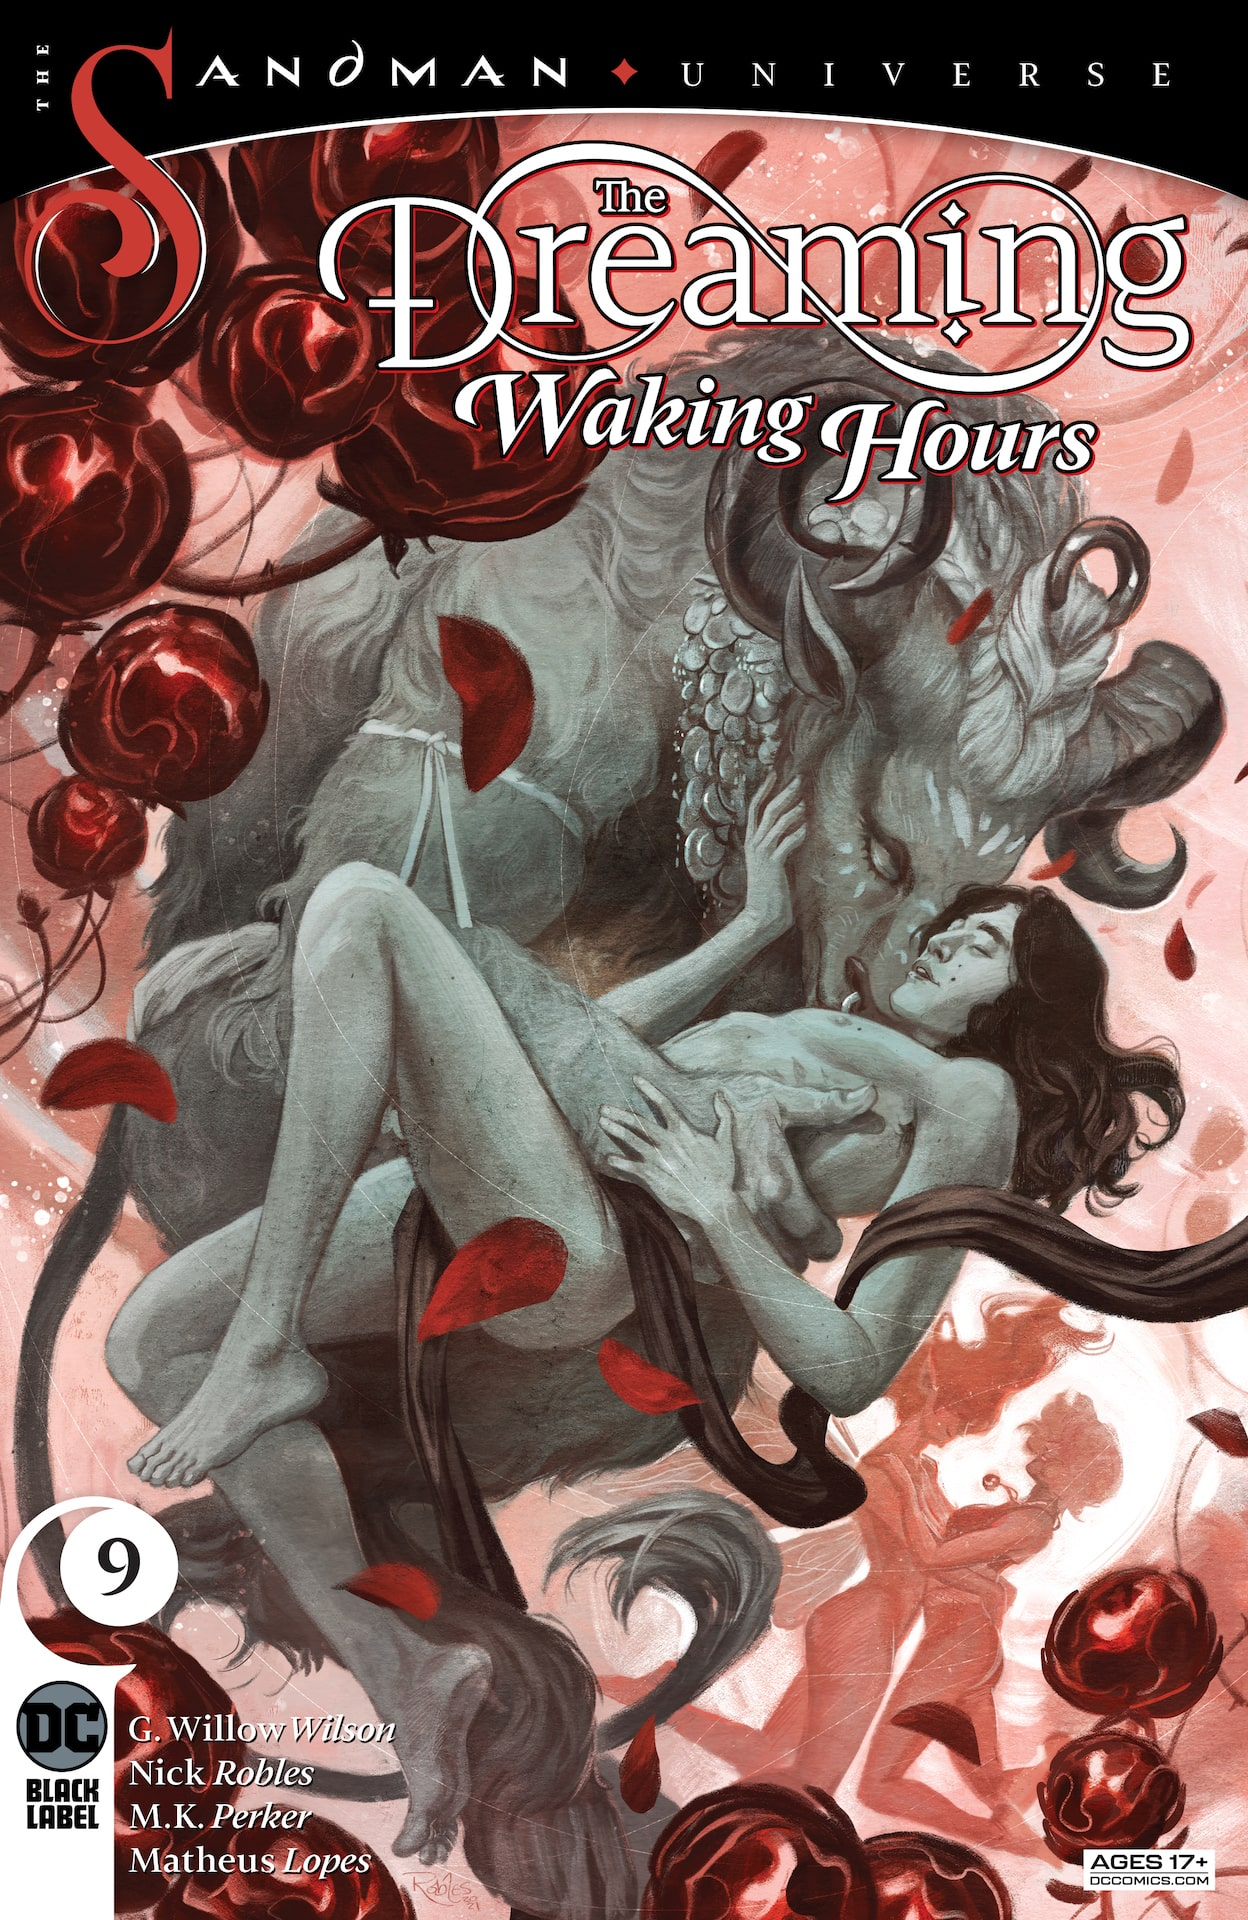 DC Preview: The Dreaming: Waking Hours #9